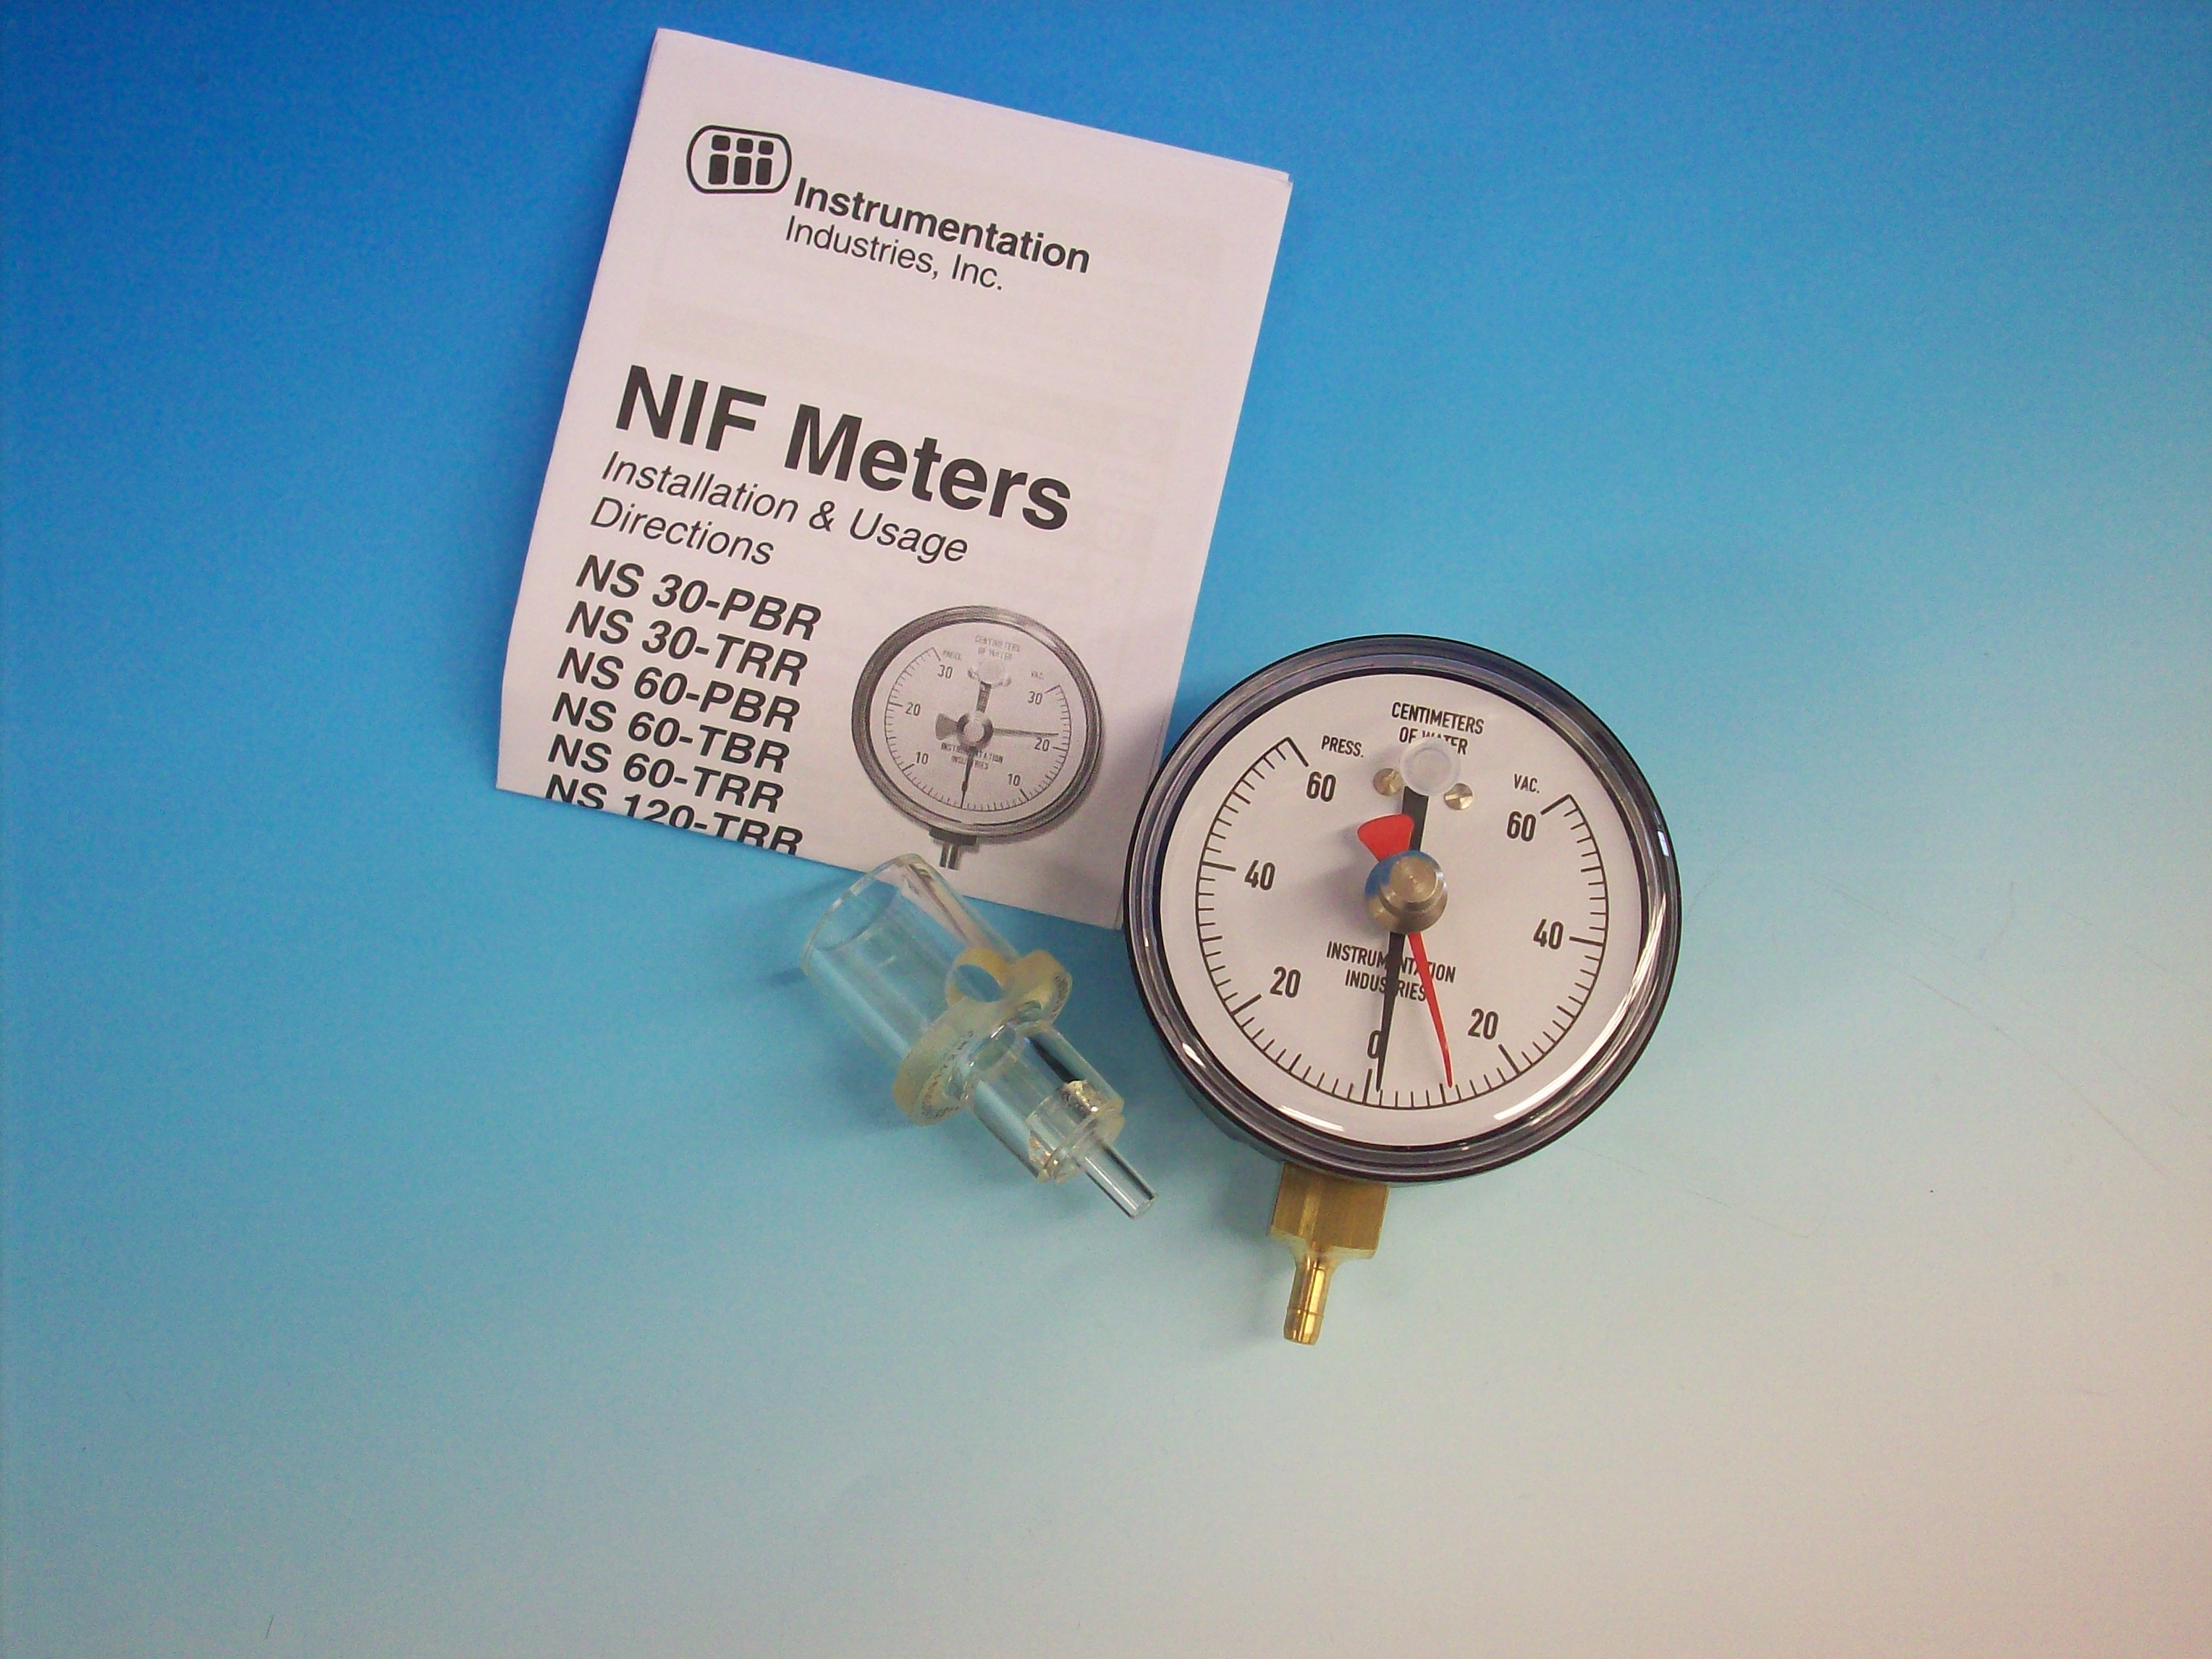 NIF 'ometer Kit